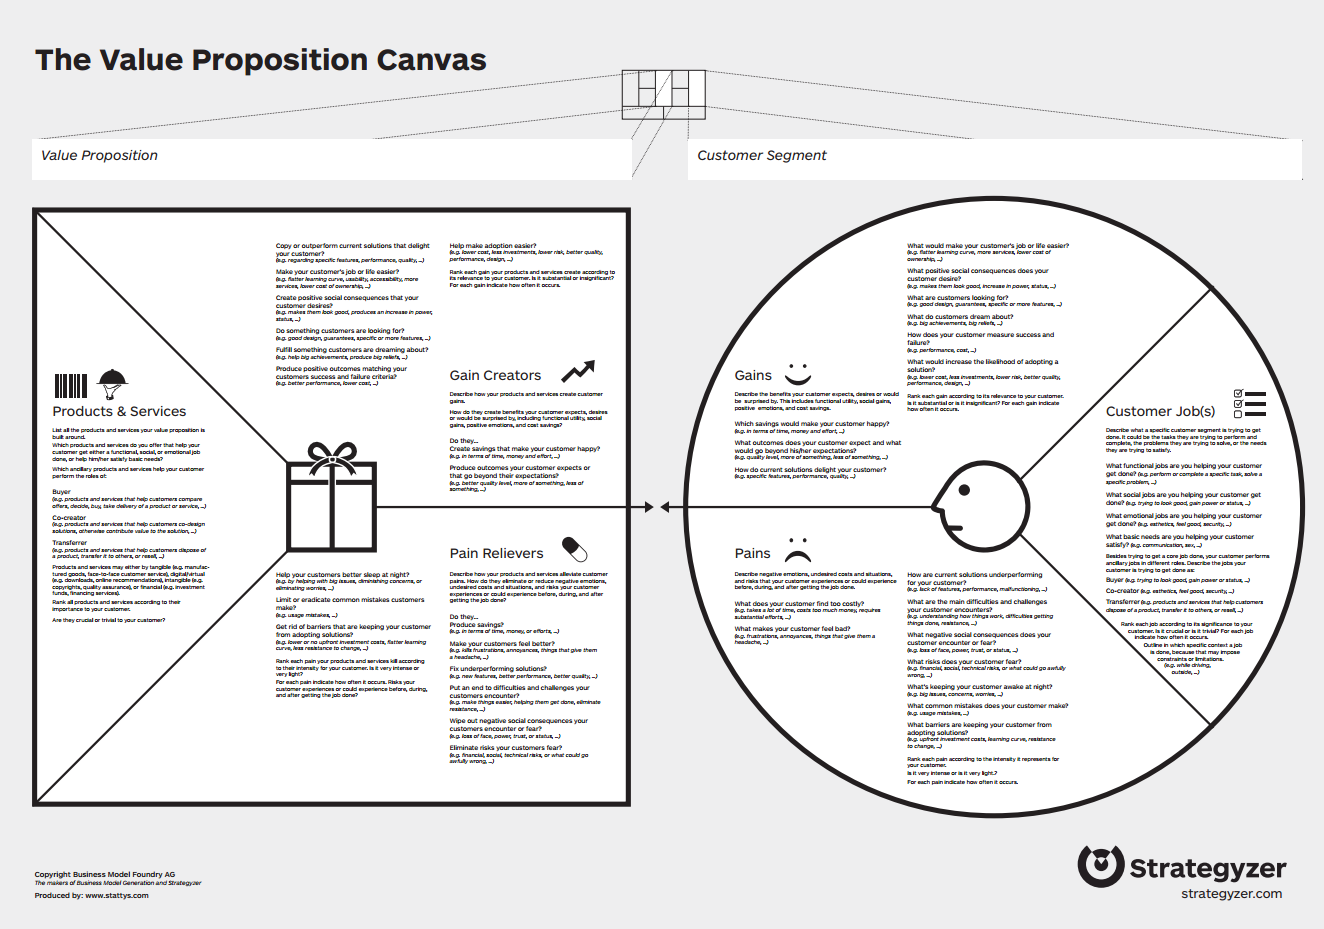 value proposition canvas The value proposition canvas makes explicit how you are creating value for your customers it helps you to design products and services your customers want build better value proposition canvas this application combines the speed of a napkin sketch with the smarts of a spreadsheet it enables you to map, test, and iterate your value proposition ideas – fast.